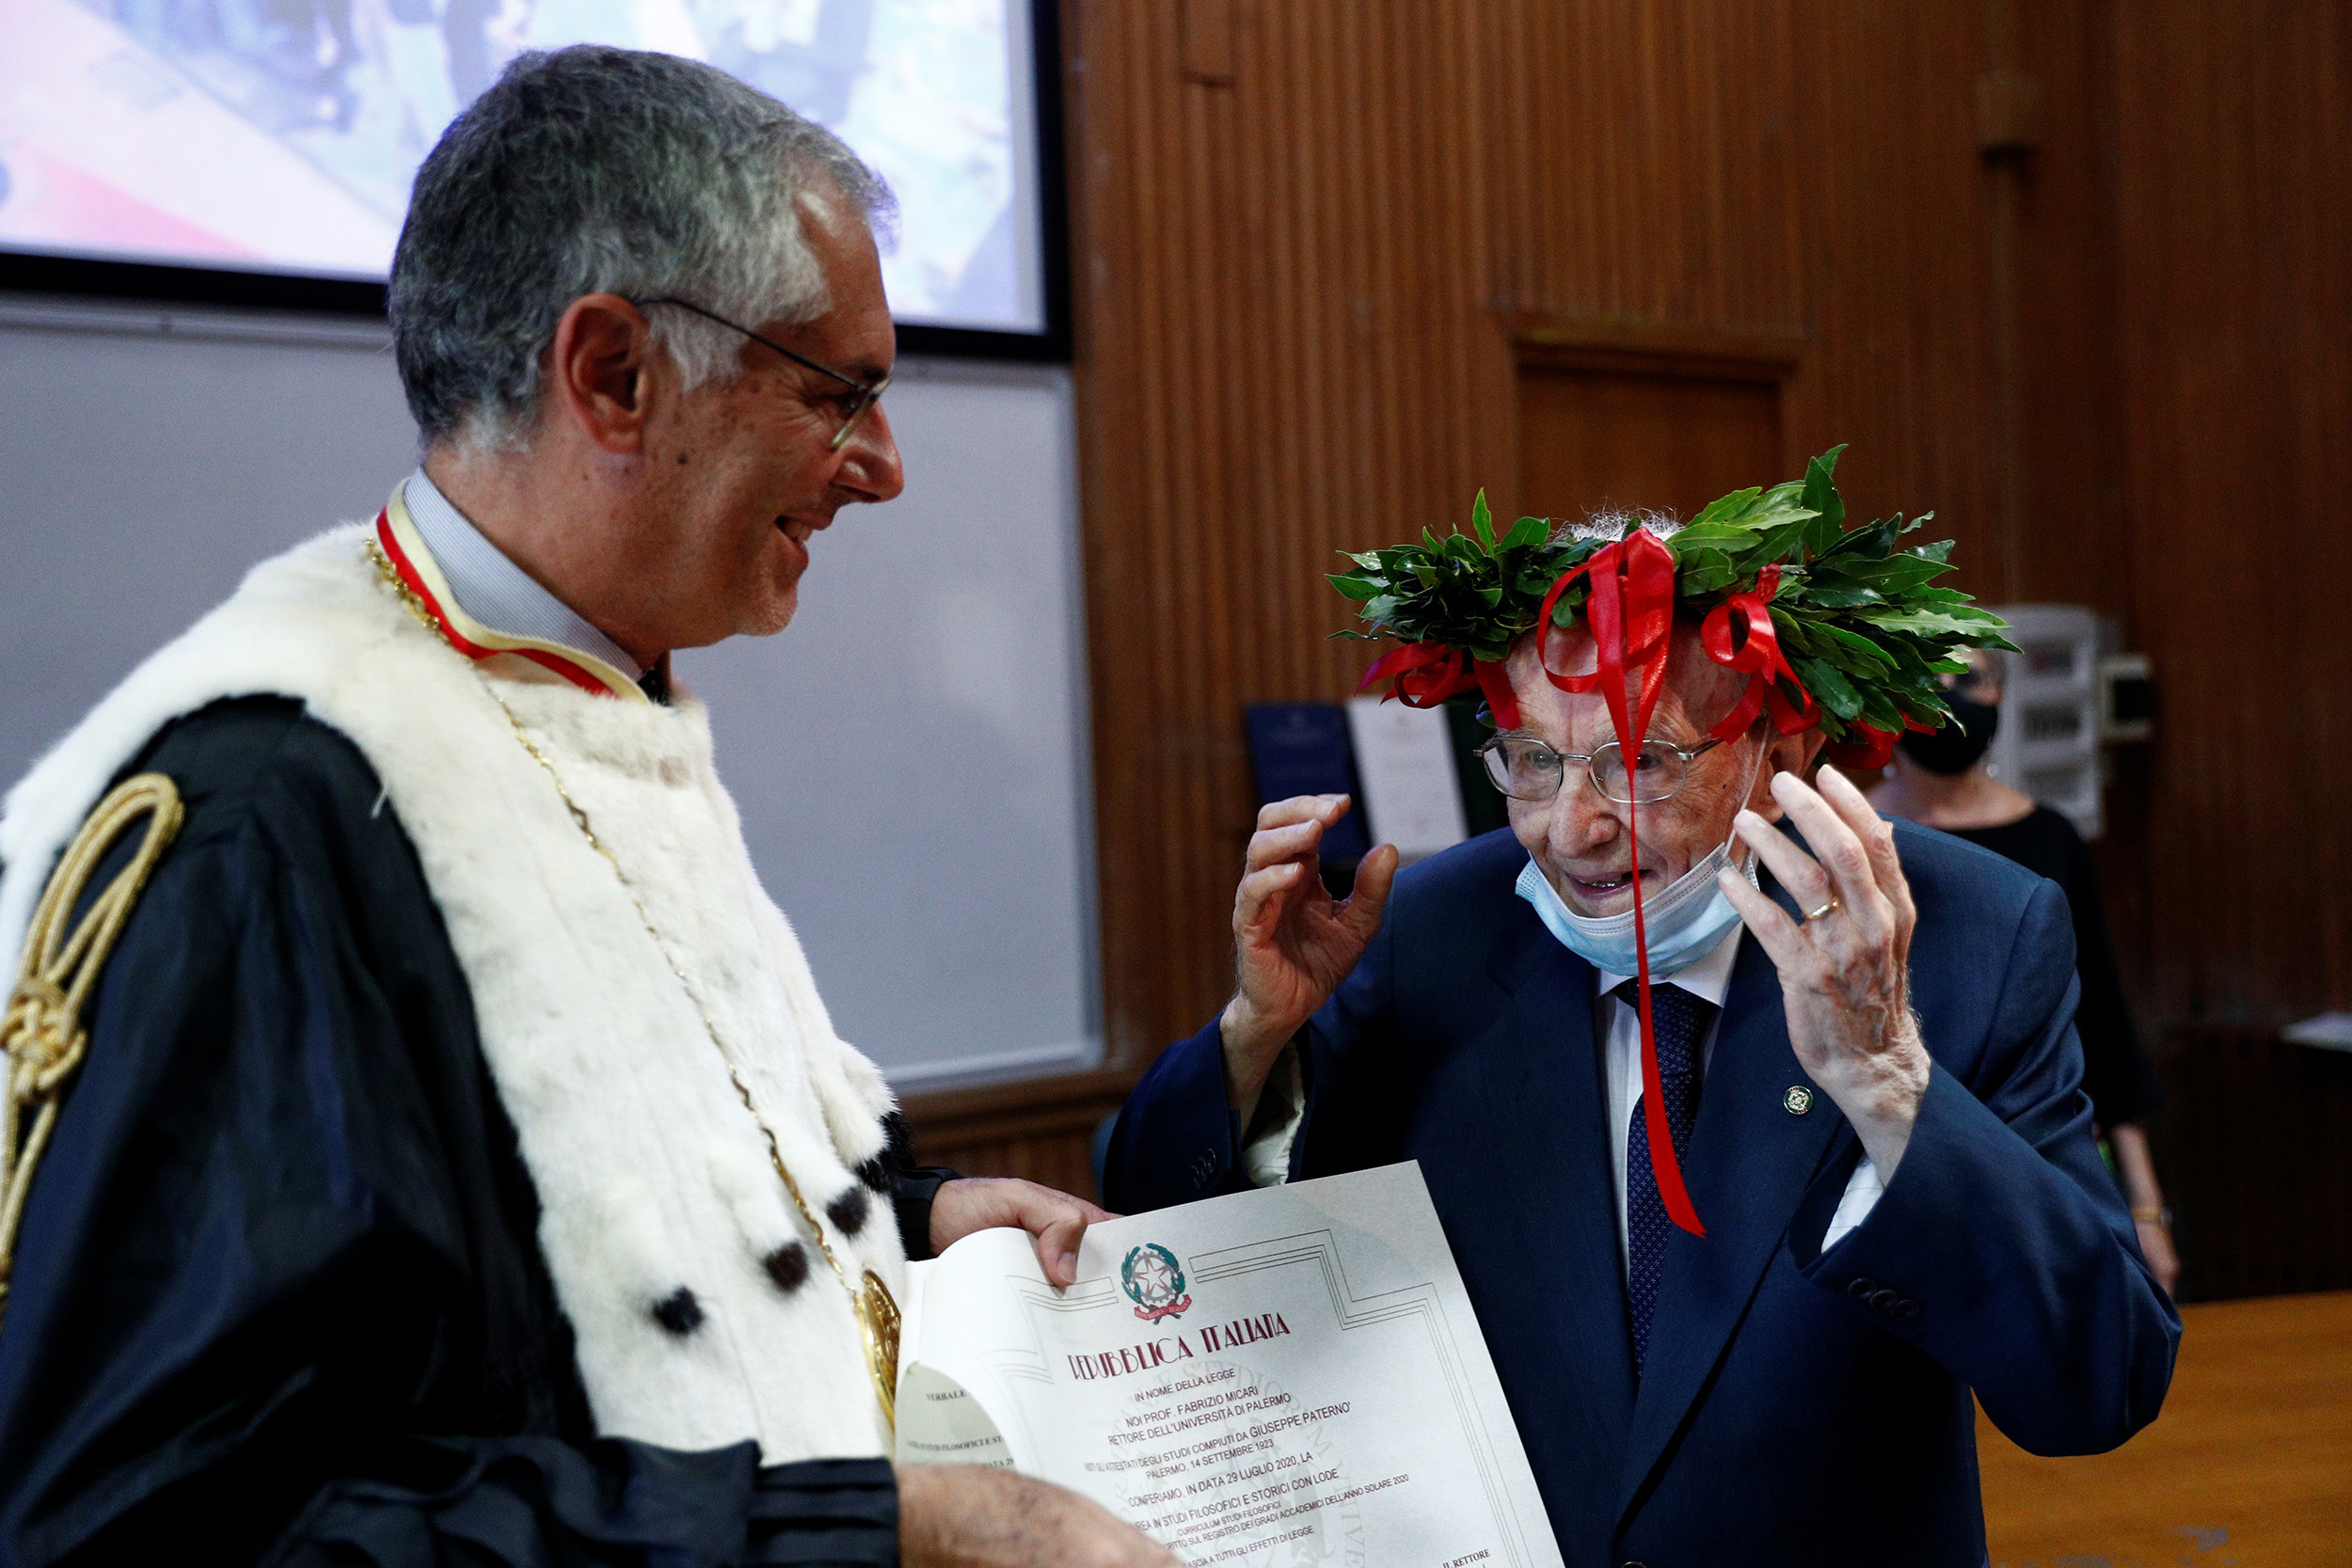 An older man in a suit with a laurel crown smiles as another man in formal ermine hands him a graduation certificate